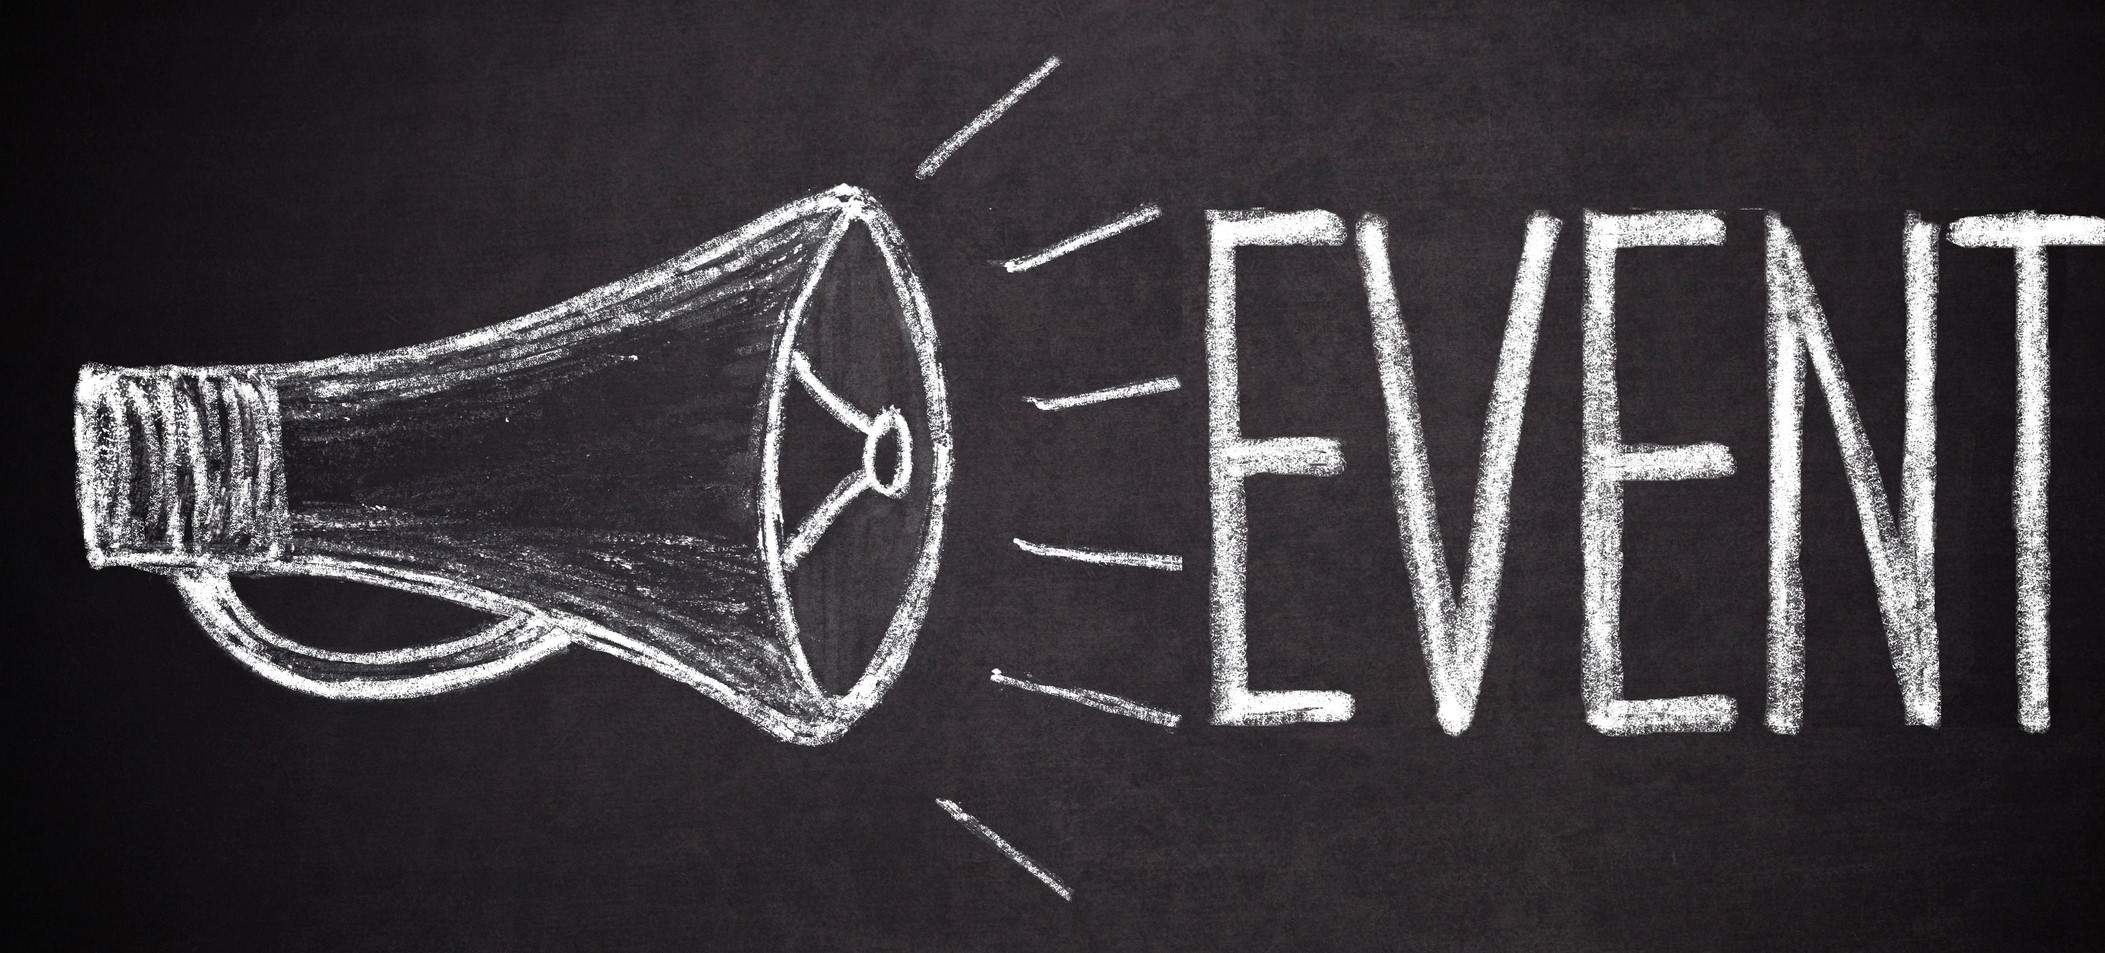 Event Marketing and Promoting: Is Your Event Visible?